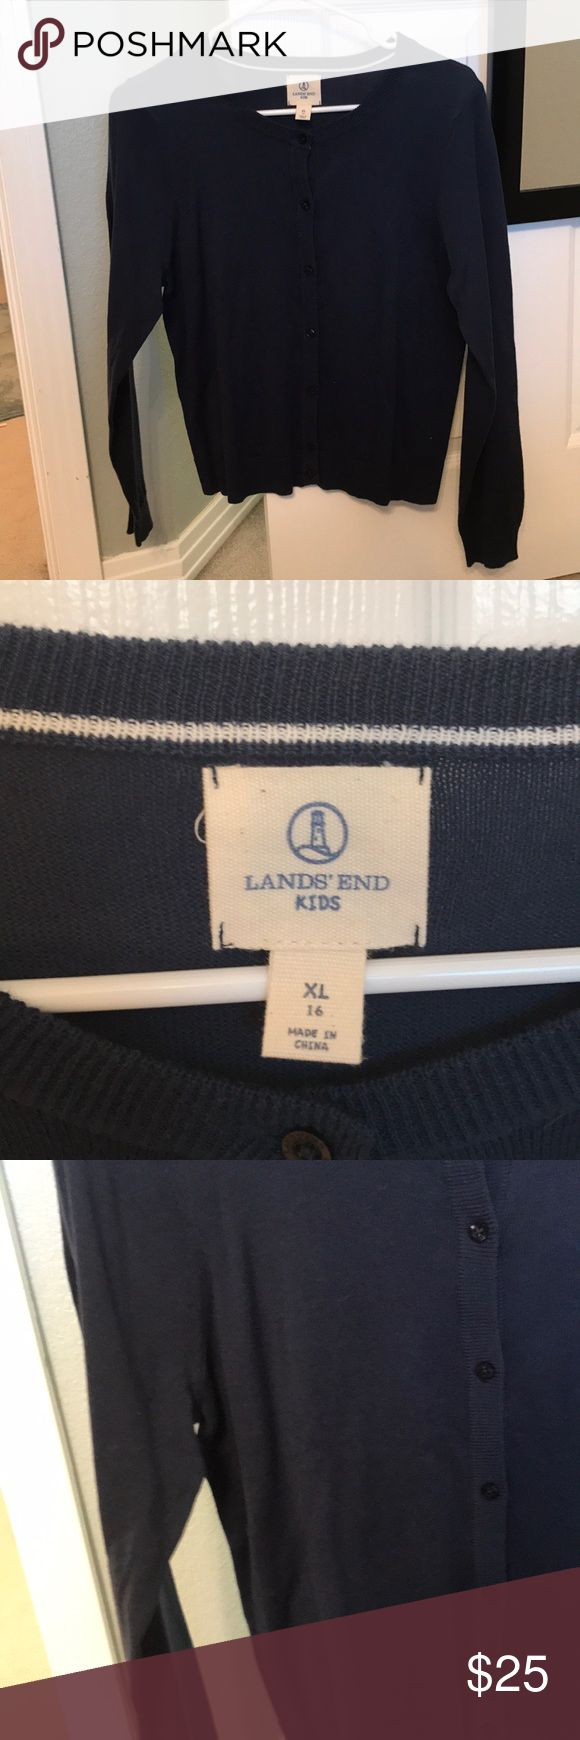 Lands end button down navy sweater Navy blue lands end kids/girls size 16 sweater! Only worn 1 time, really good condition. No stains, tears, rips or holes. Very nice sweater! Lands' End Sweaters